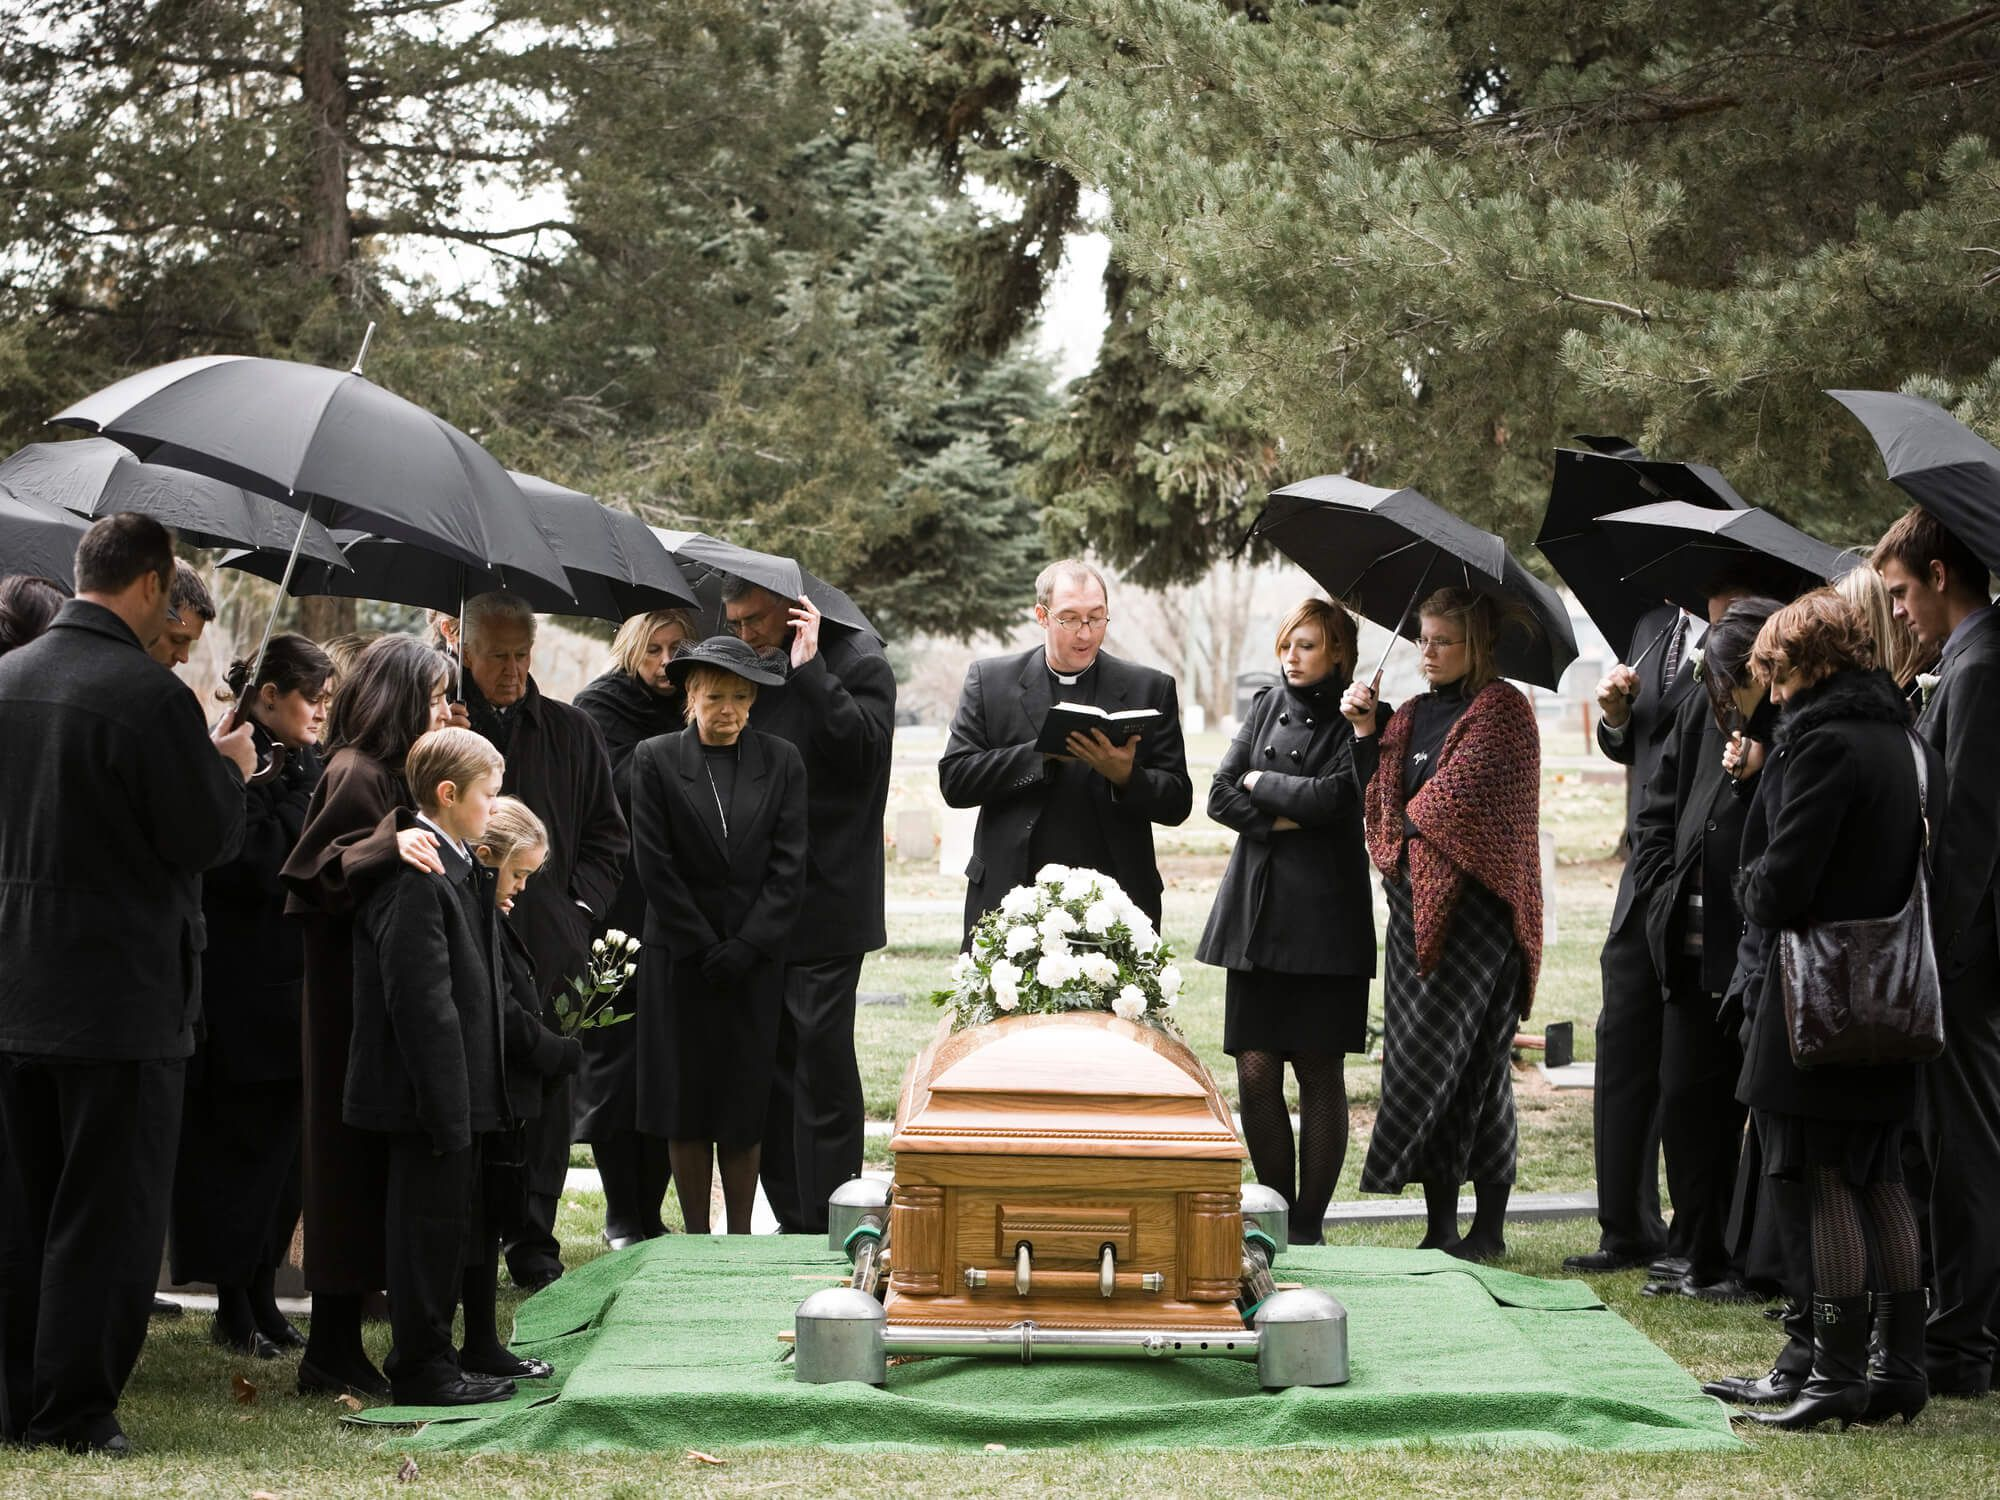 What You Need to Know About Prepaid Funeral Plans